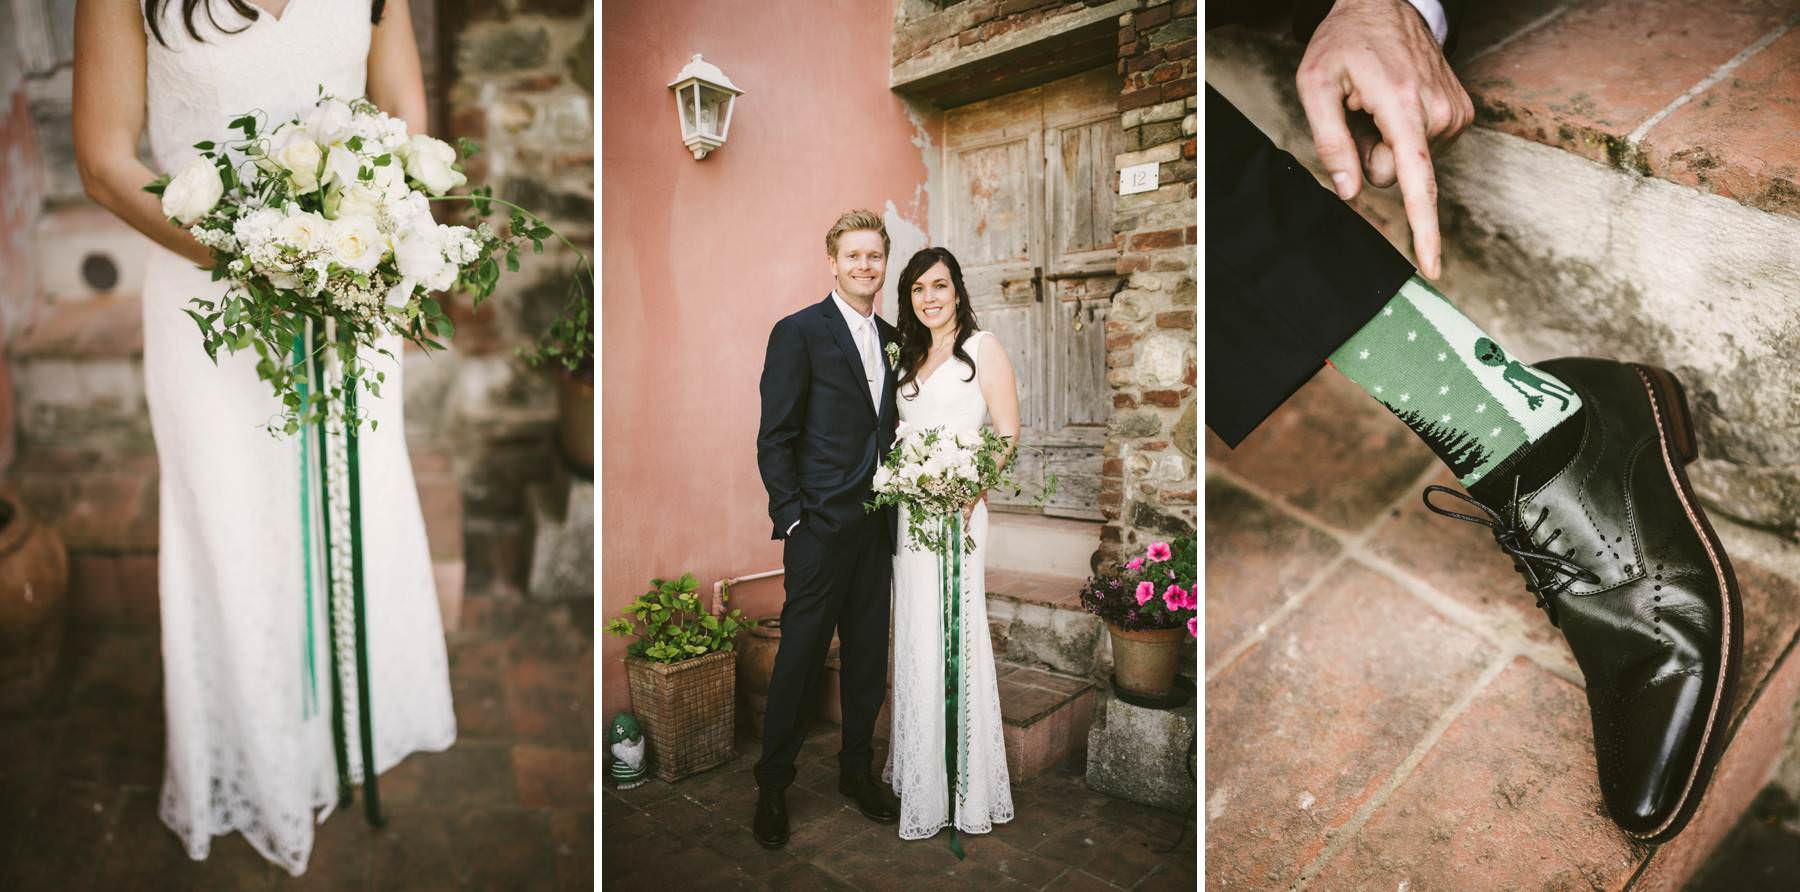 Elopement in Tuscany at medieval borgo of Peccioli